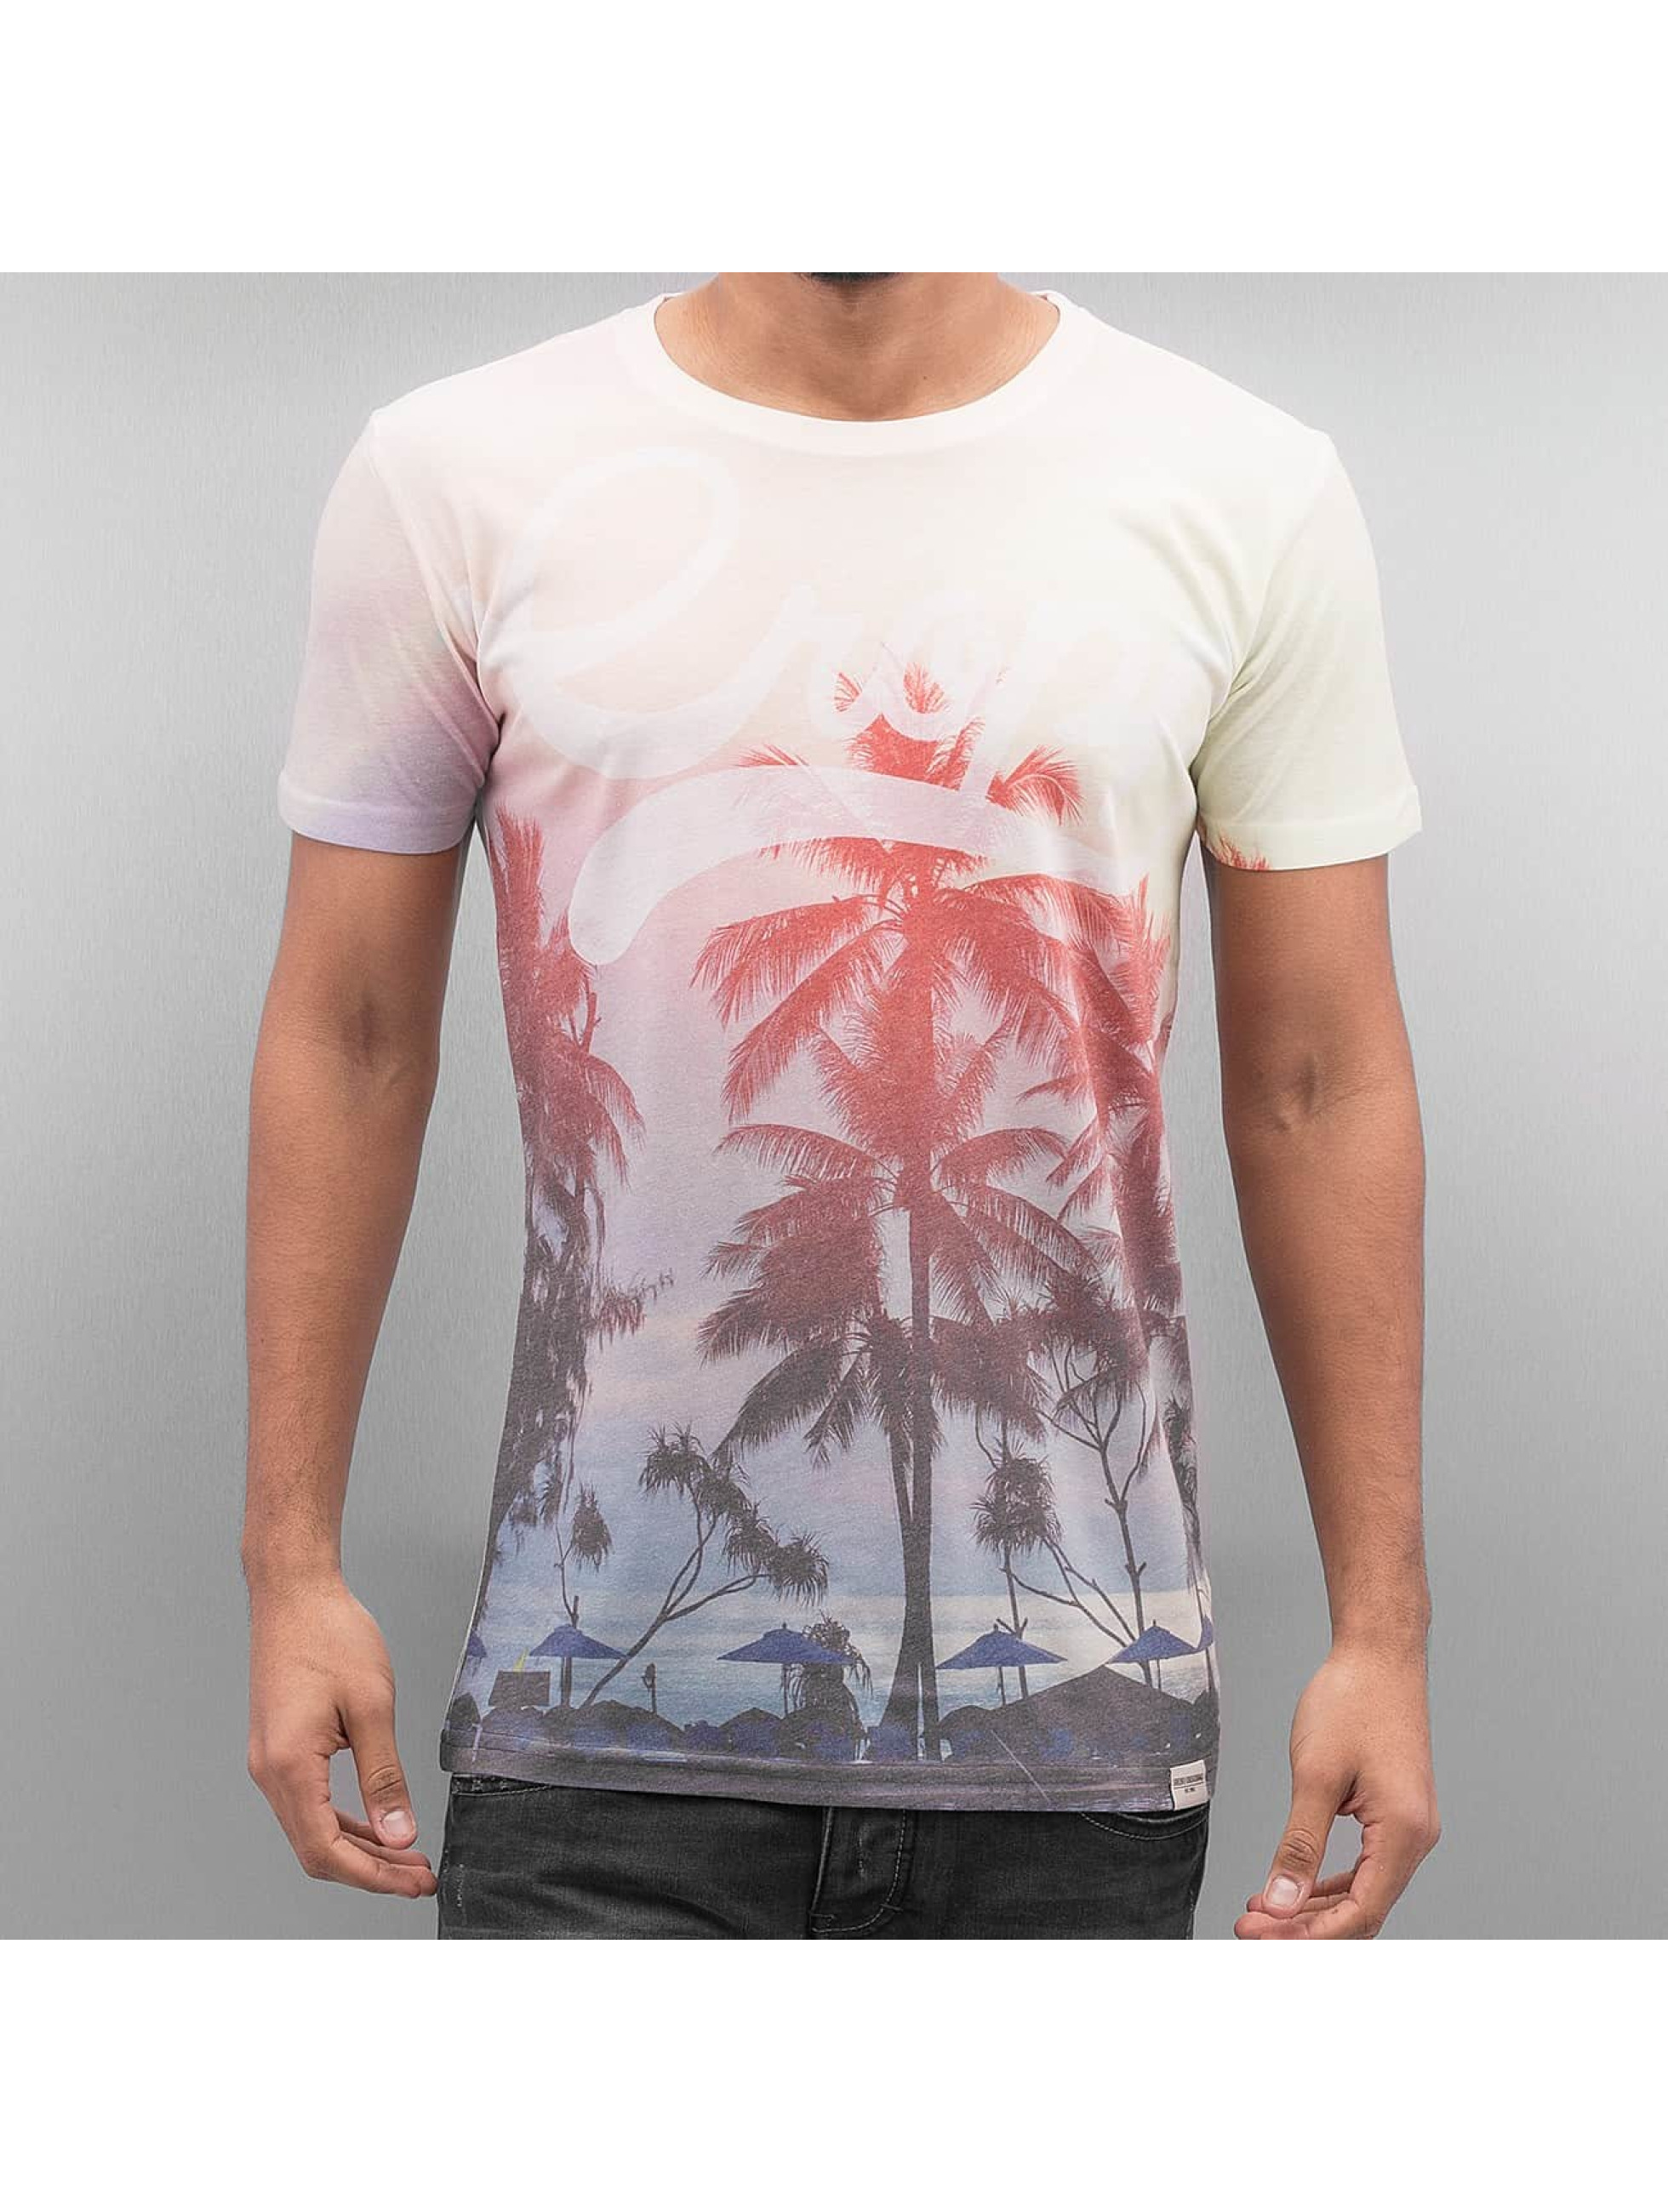 SHINE Original Haut / T-Shirt Palms en multicolore